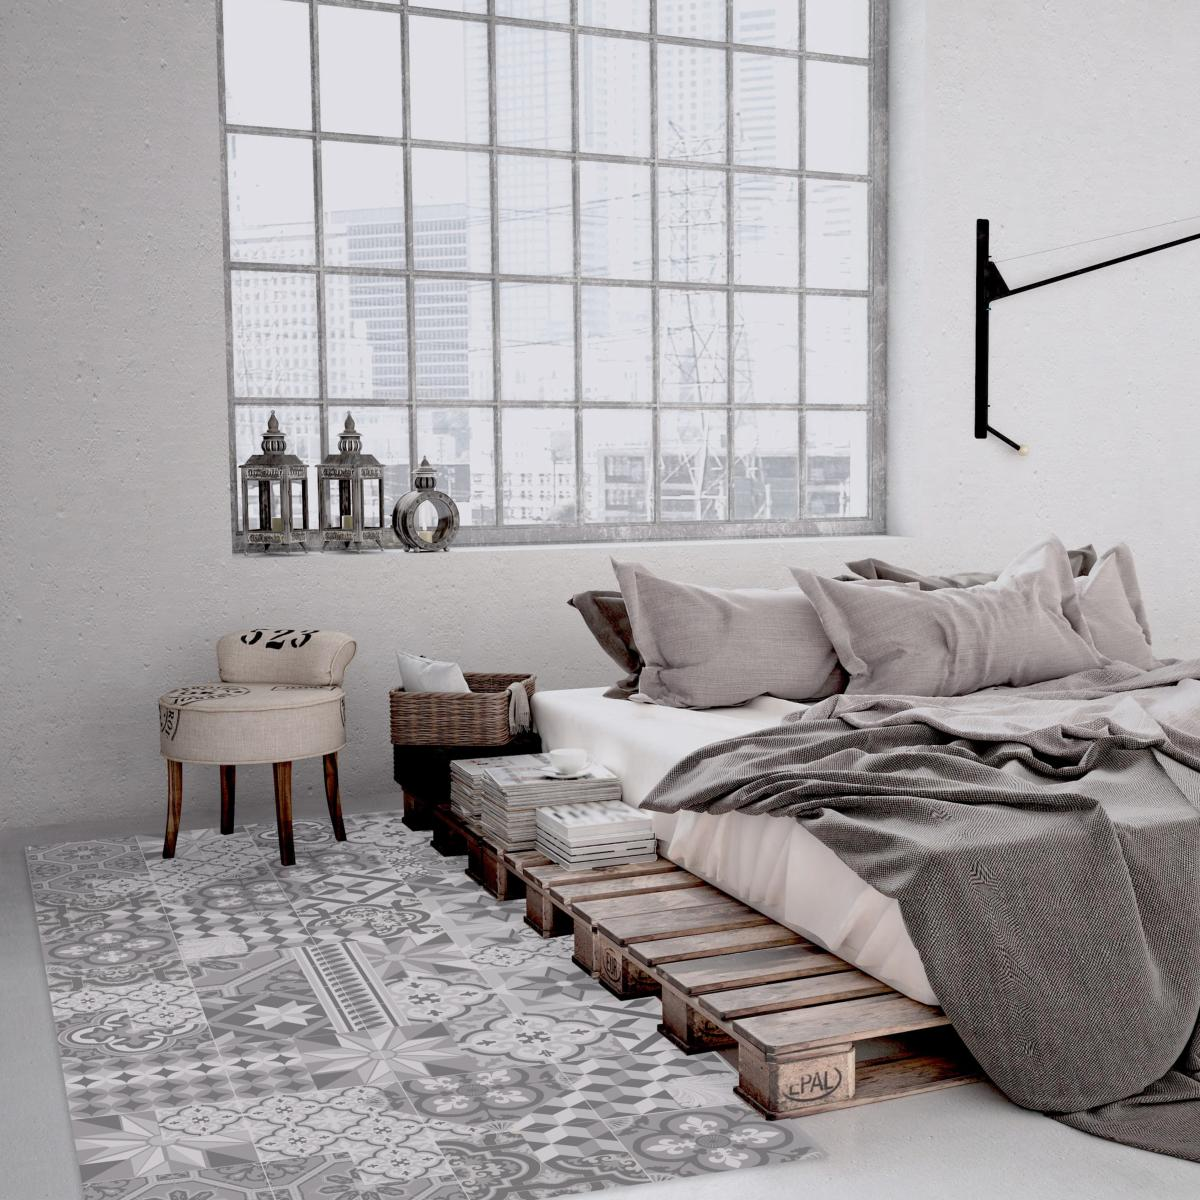 tapis vinyle carreaux de ciment l on gris tourterelle. Black Bedroom Furniture Sets. Home Design Ideas